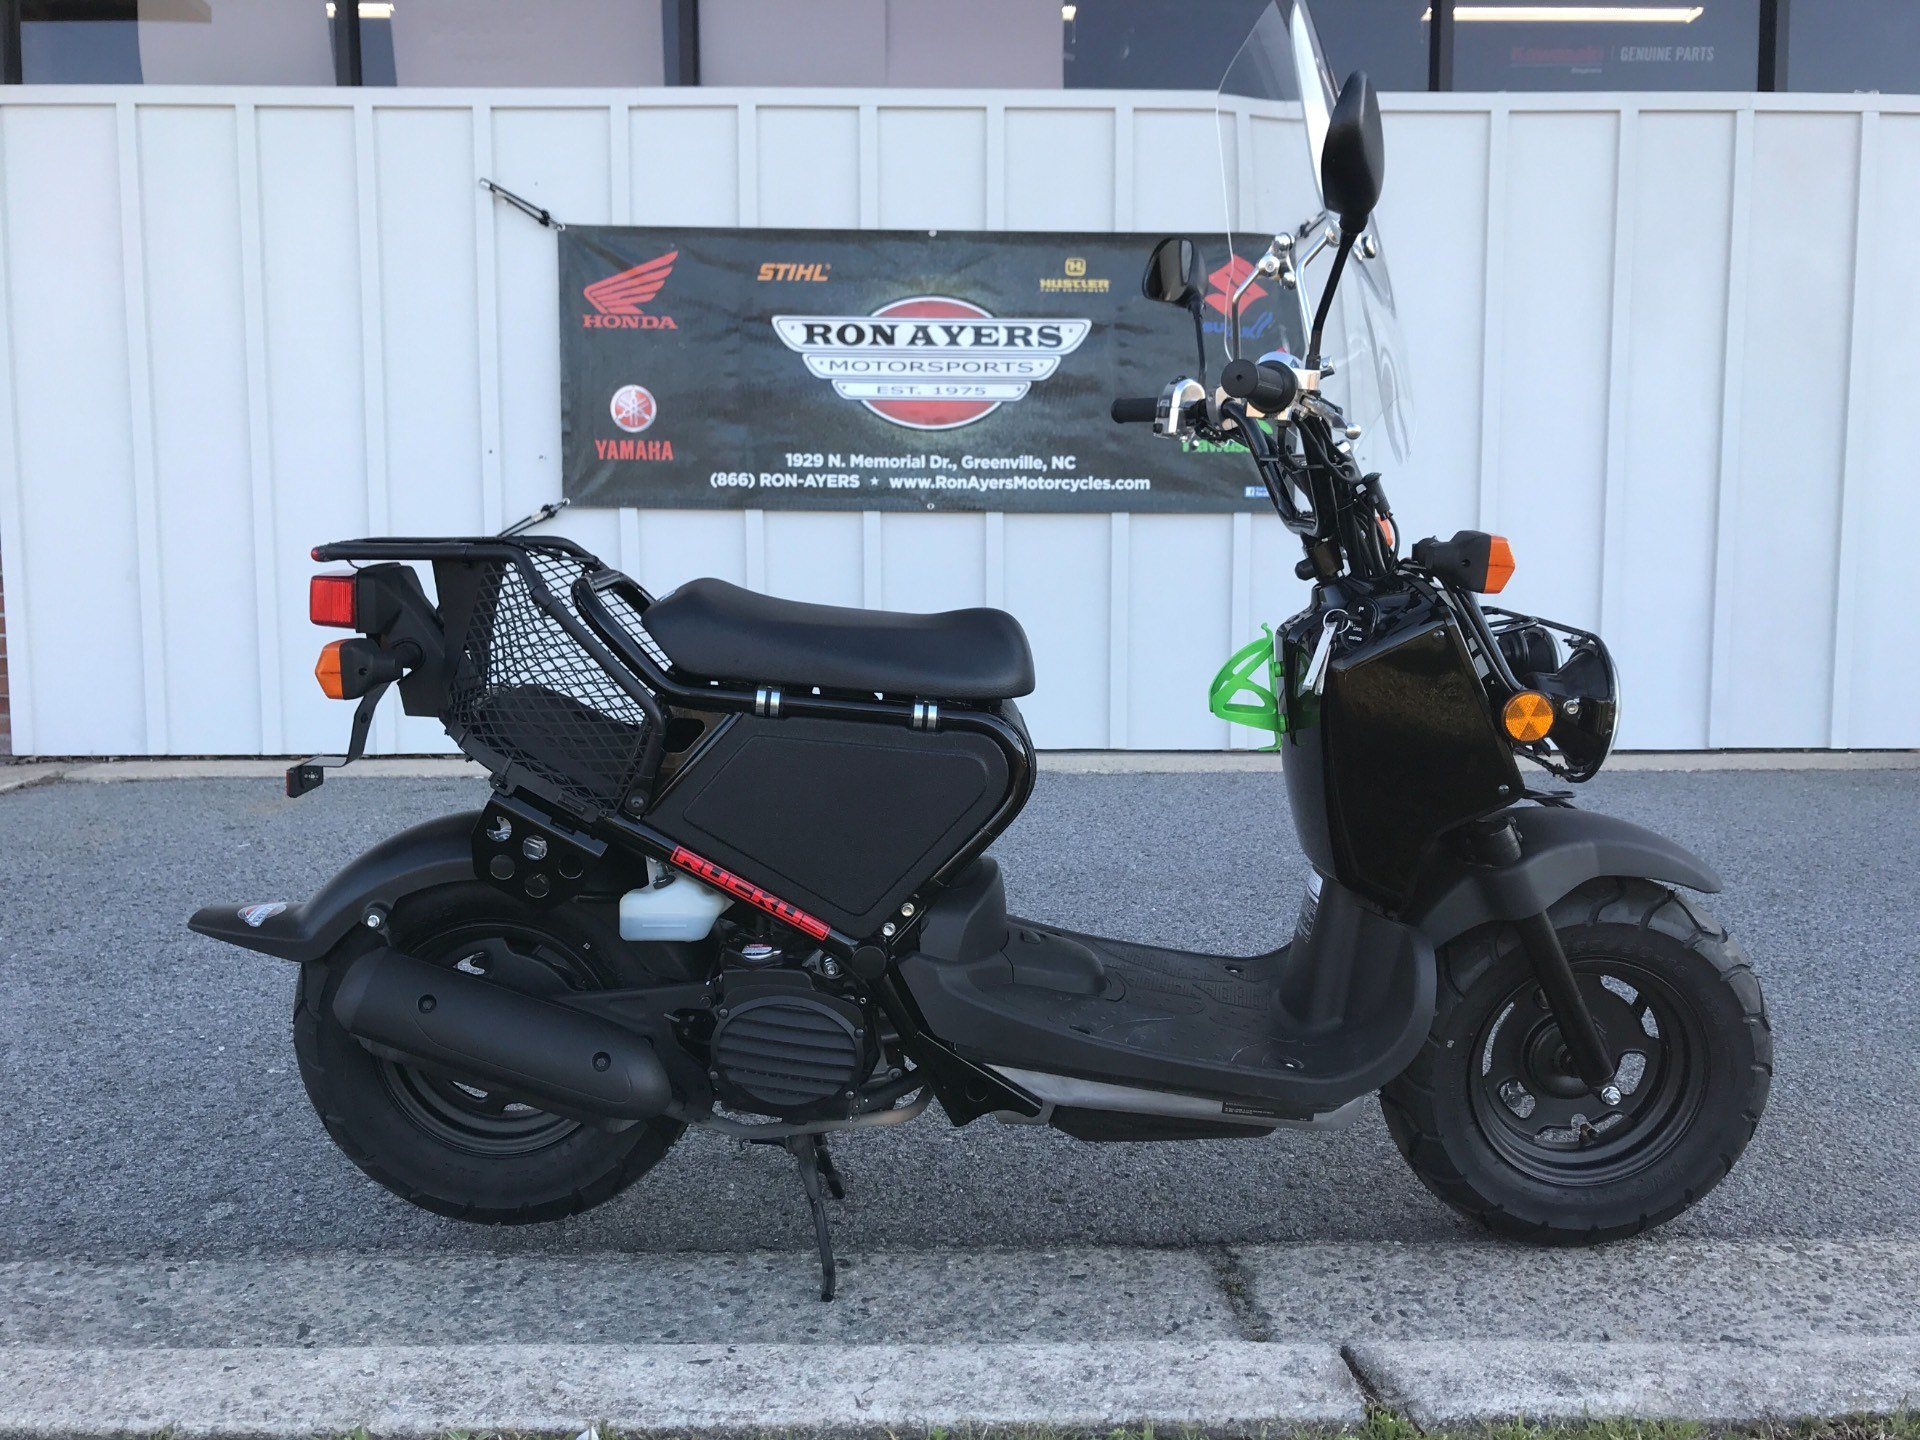 Scooters For Sale Greenville Nc >> Used 2017 Honda Ruckus Scooters In Greenville Nc Stock Number N A